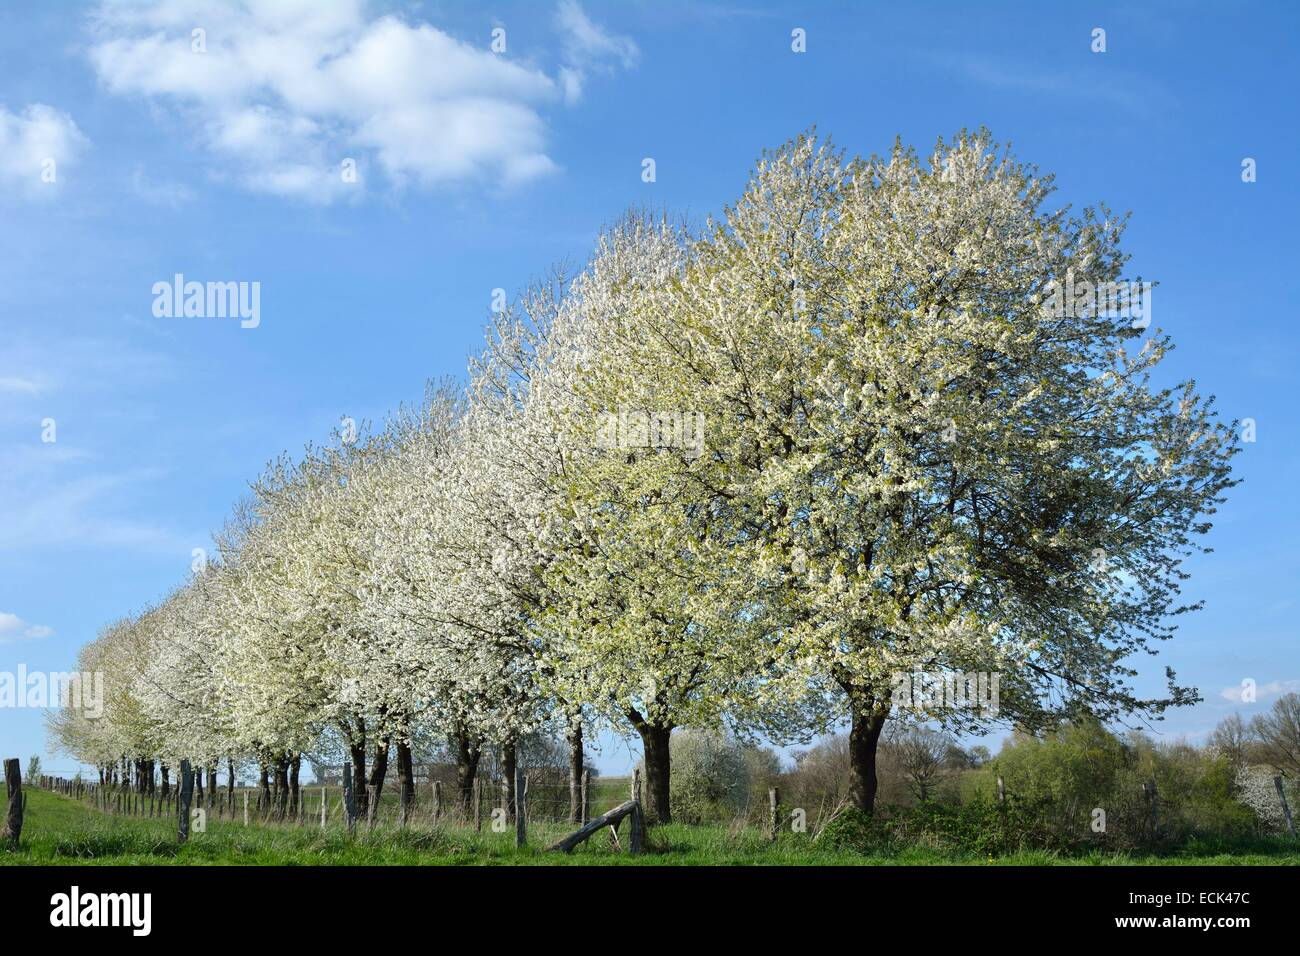 France, Doubs, Allenjoie, alignment of cherry blossoms in an orchard. Plateau Brognard - Stock Image